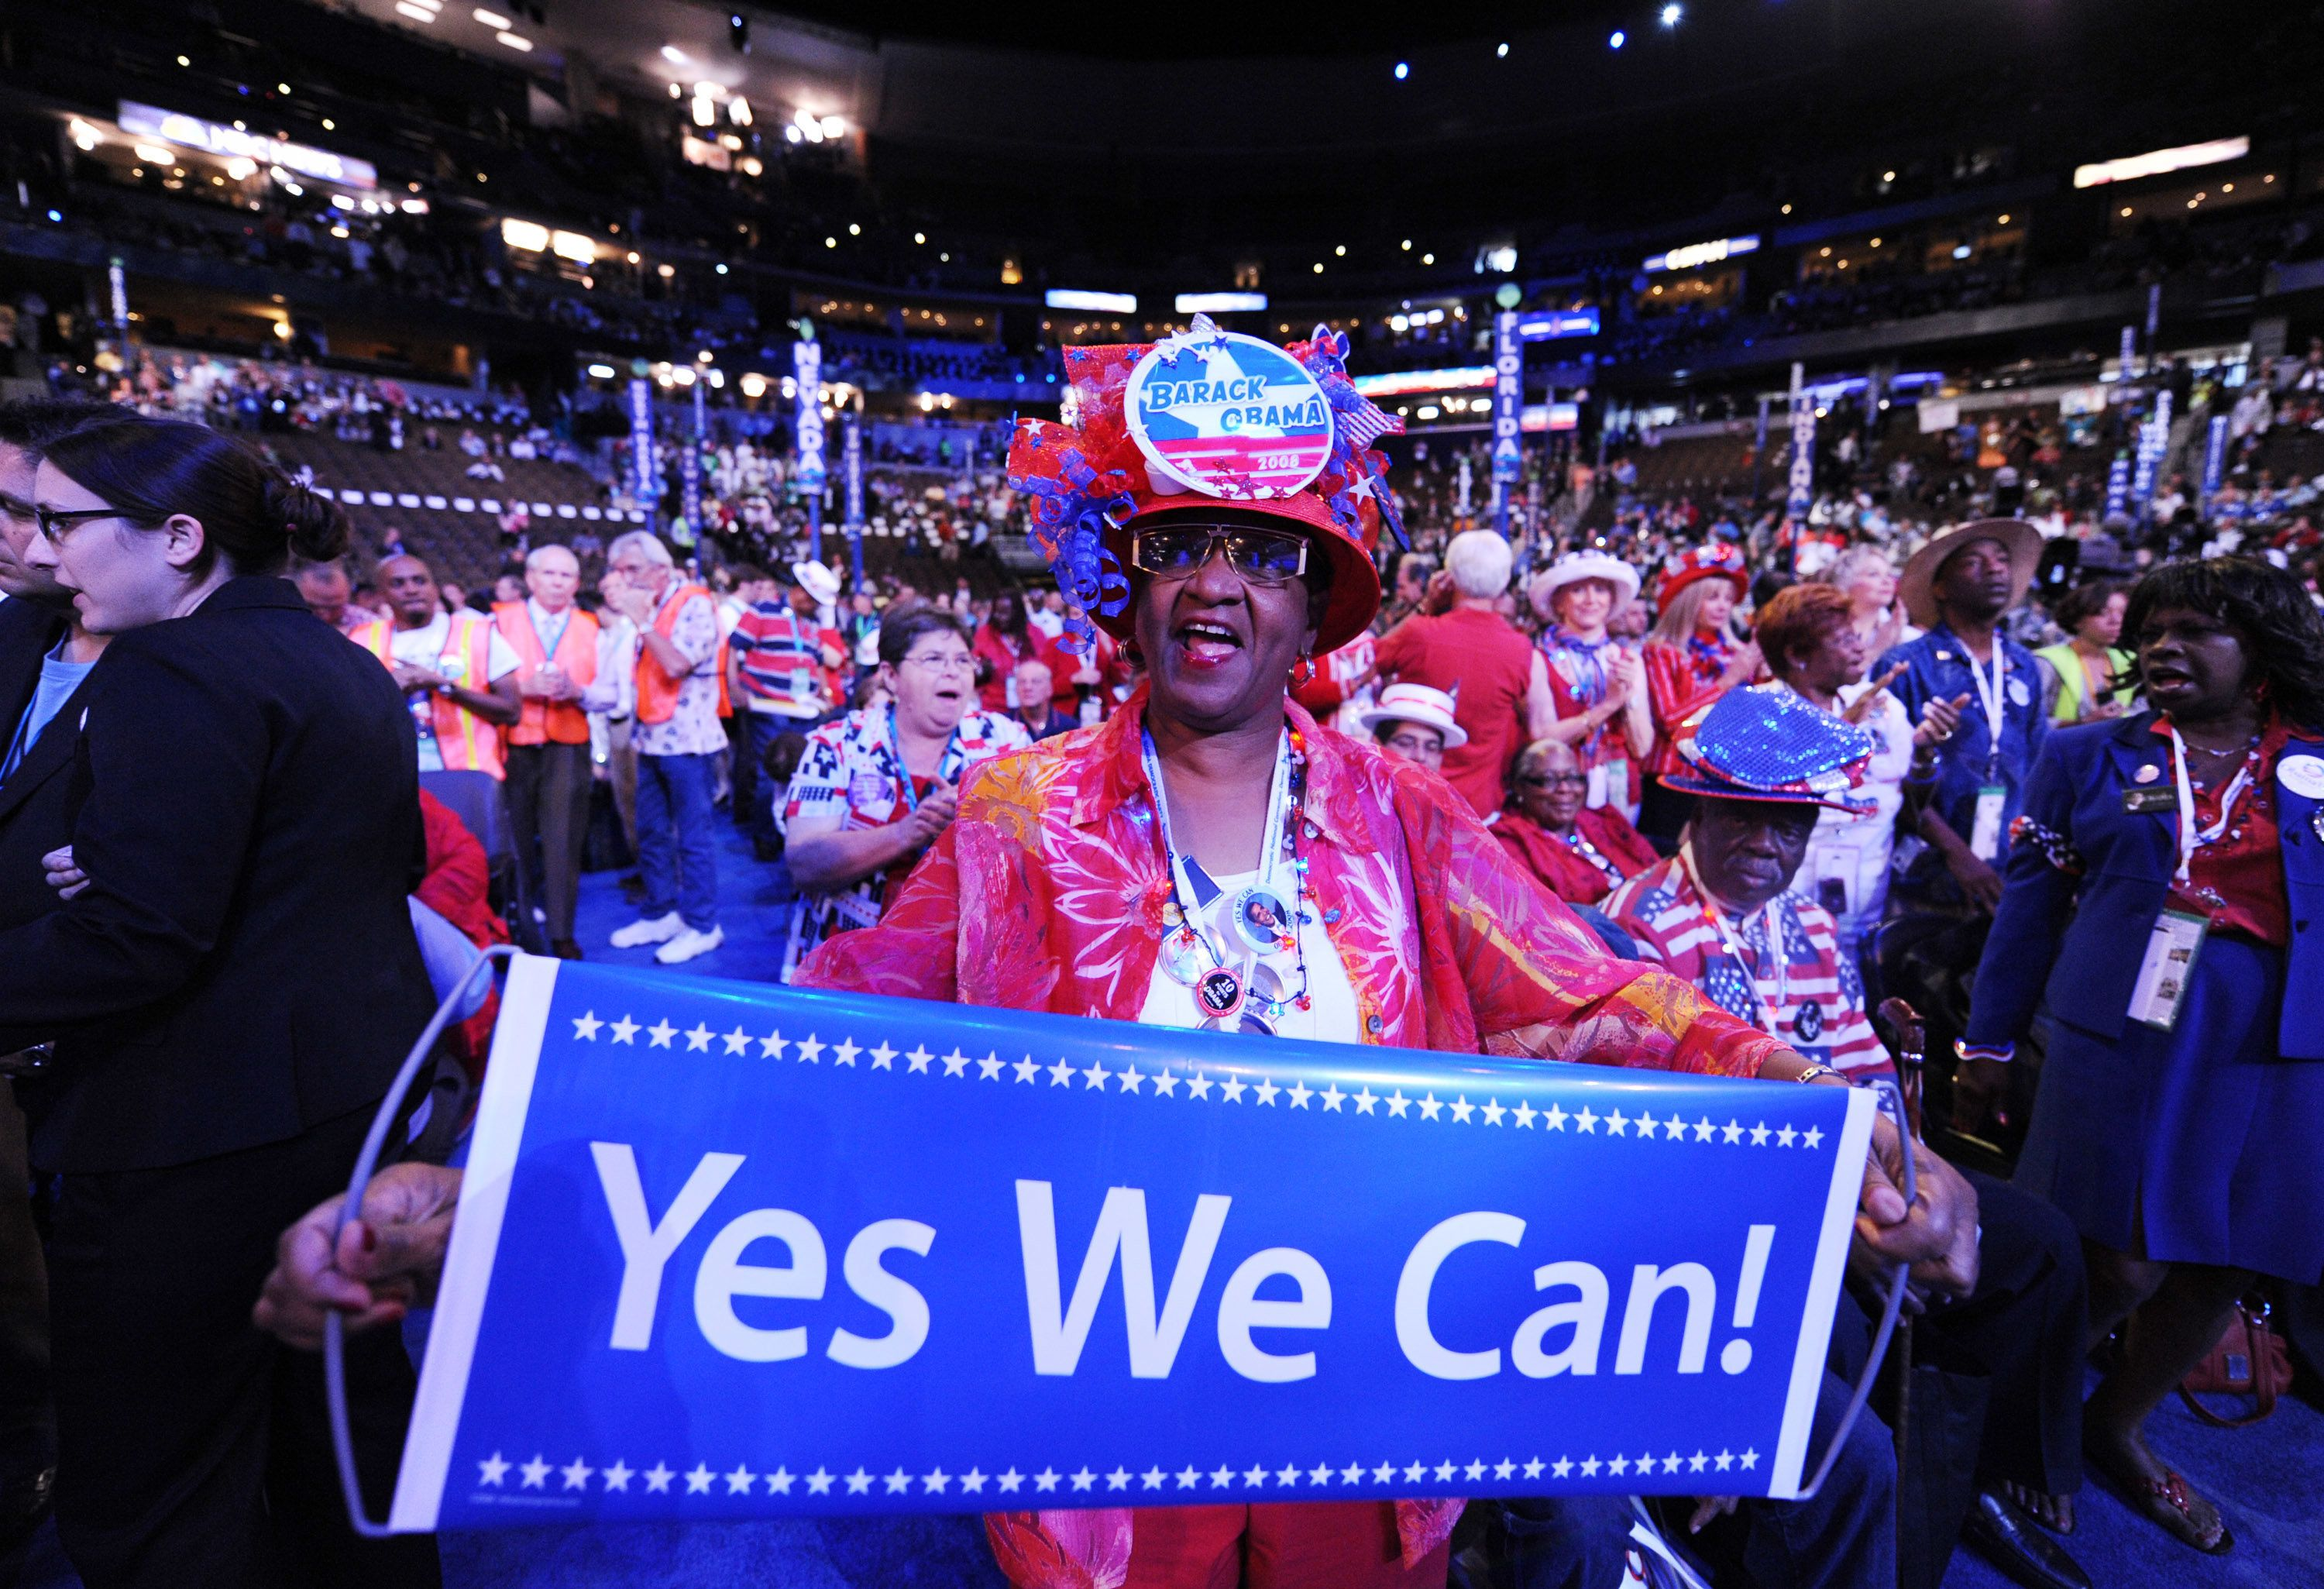 A delegate supporting Democratic presidential nominee Sen. Barack Obama holds a 'Yes We Can!' banner on the convention floor at the Democratic National Convention in Denver, Colorado, Wednesday, August 27, 2008.  (Photo by Olivier Douliery/Abaca Press/MCT via Getty Images)